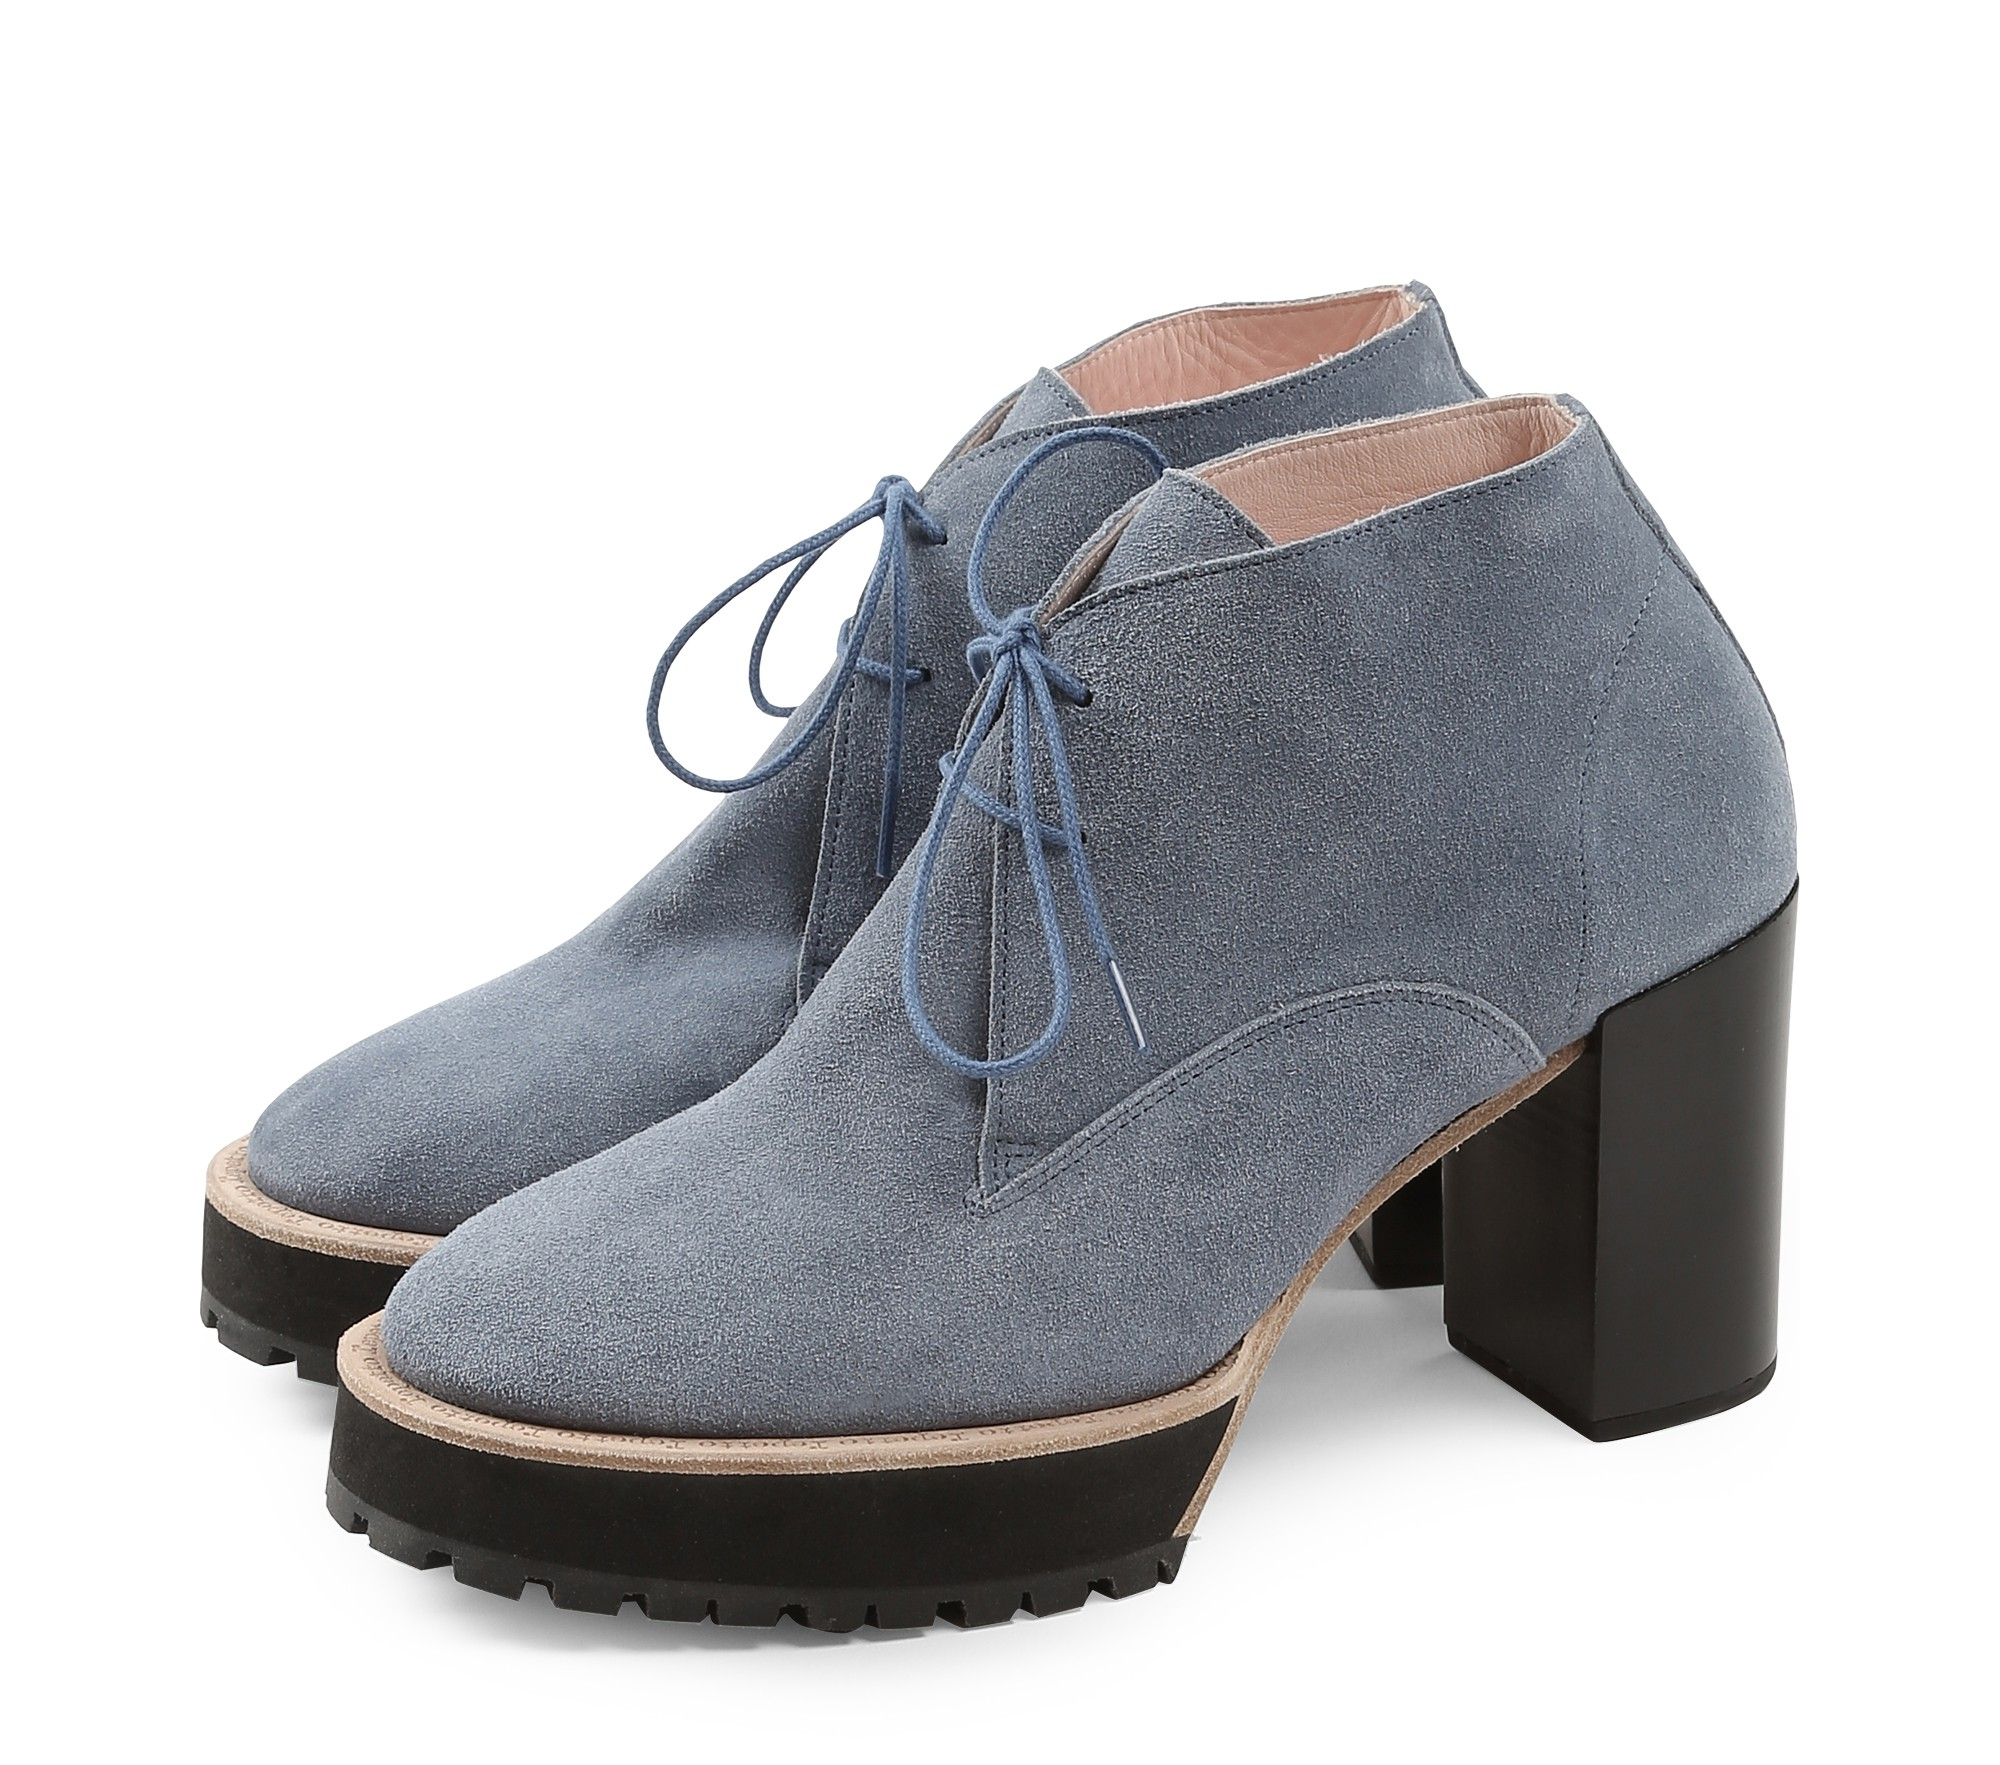 Isac oxford shoe